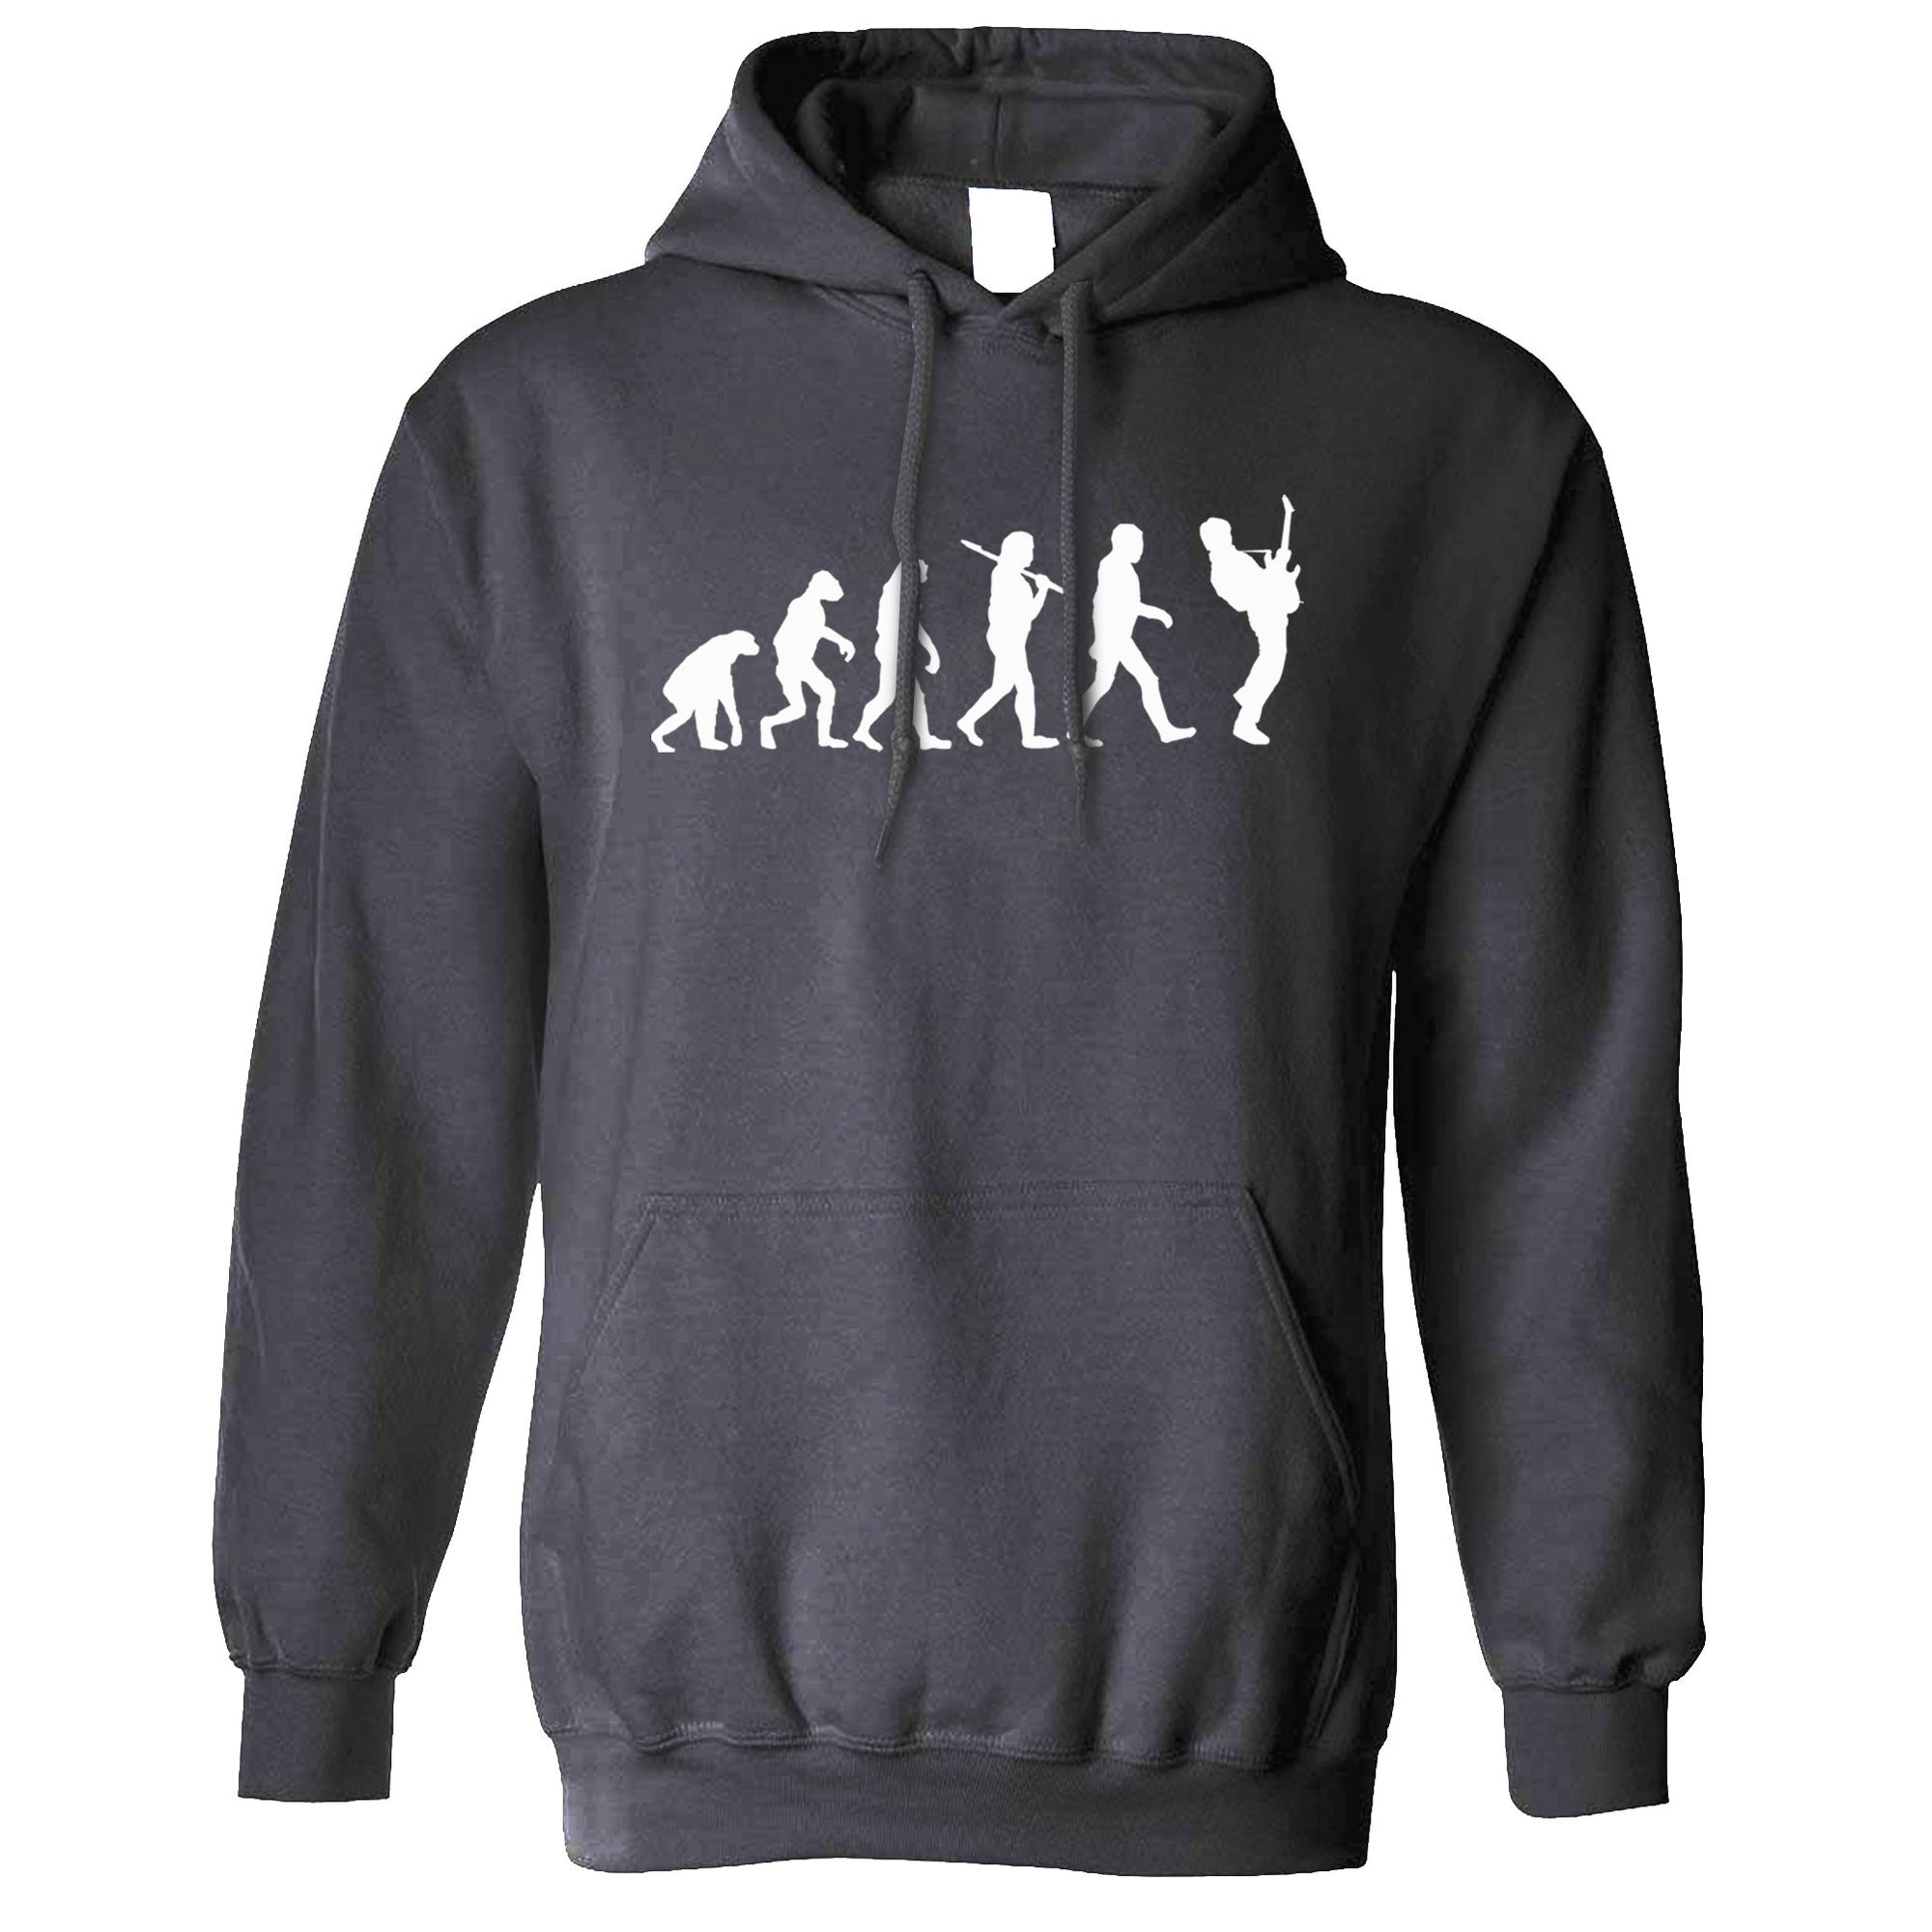 Musician Hoodie Evolution Of A Guitarist Hooded Jumper